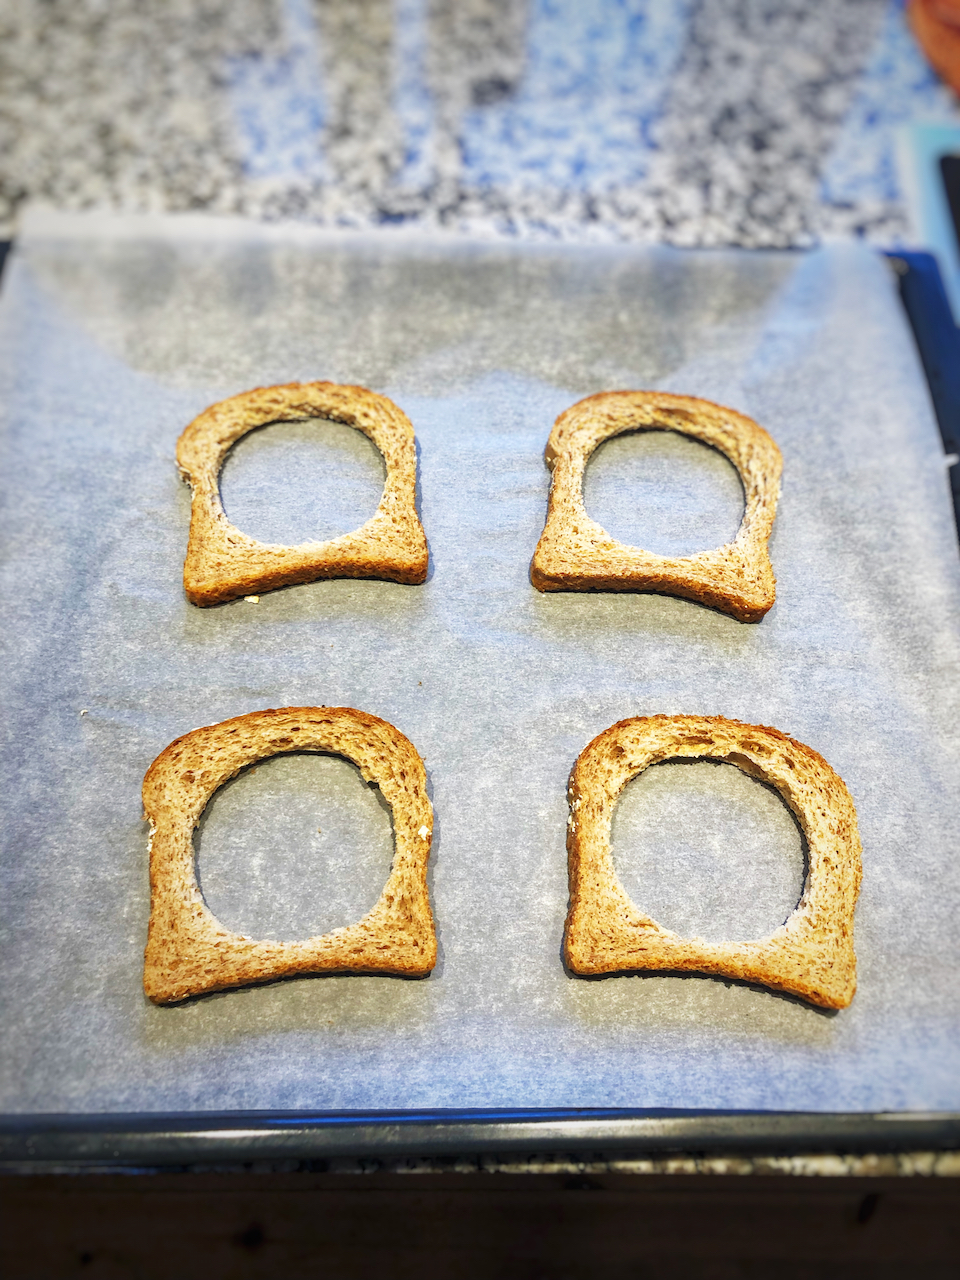 Take the 2 pieces of bread and make a round hole in the middle with a glass